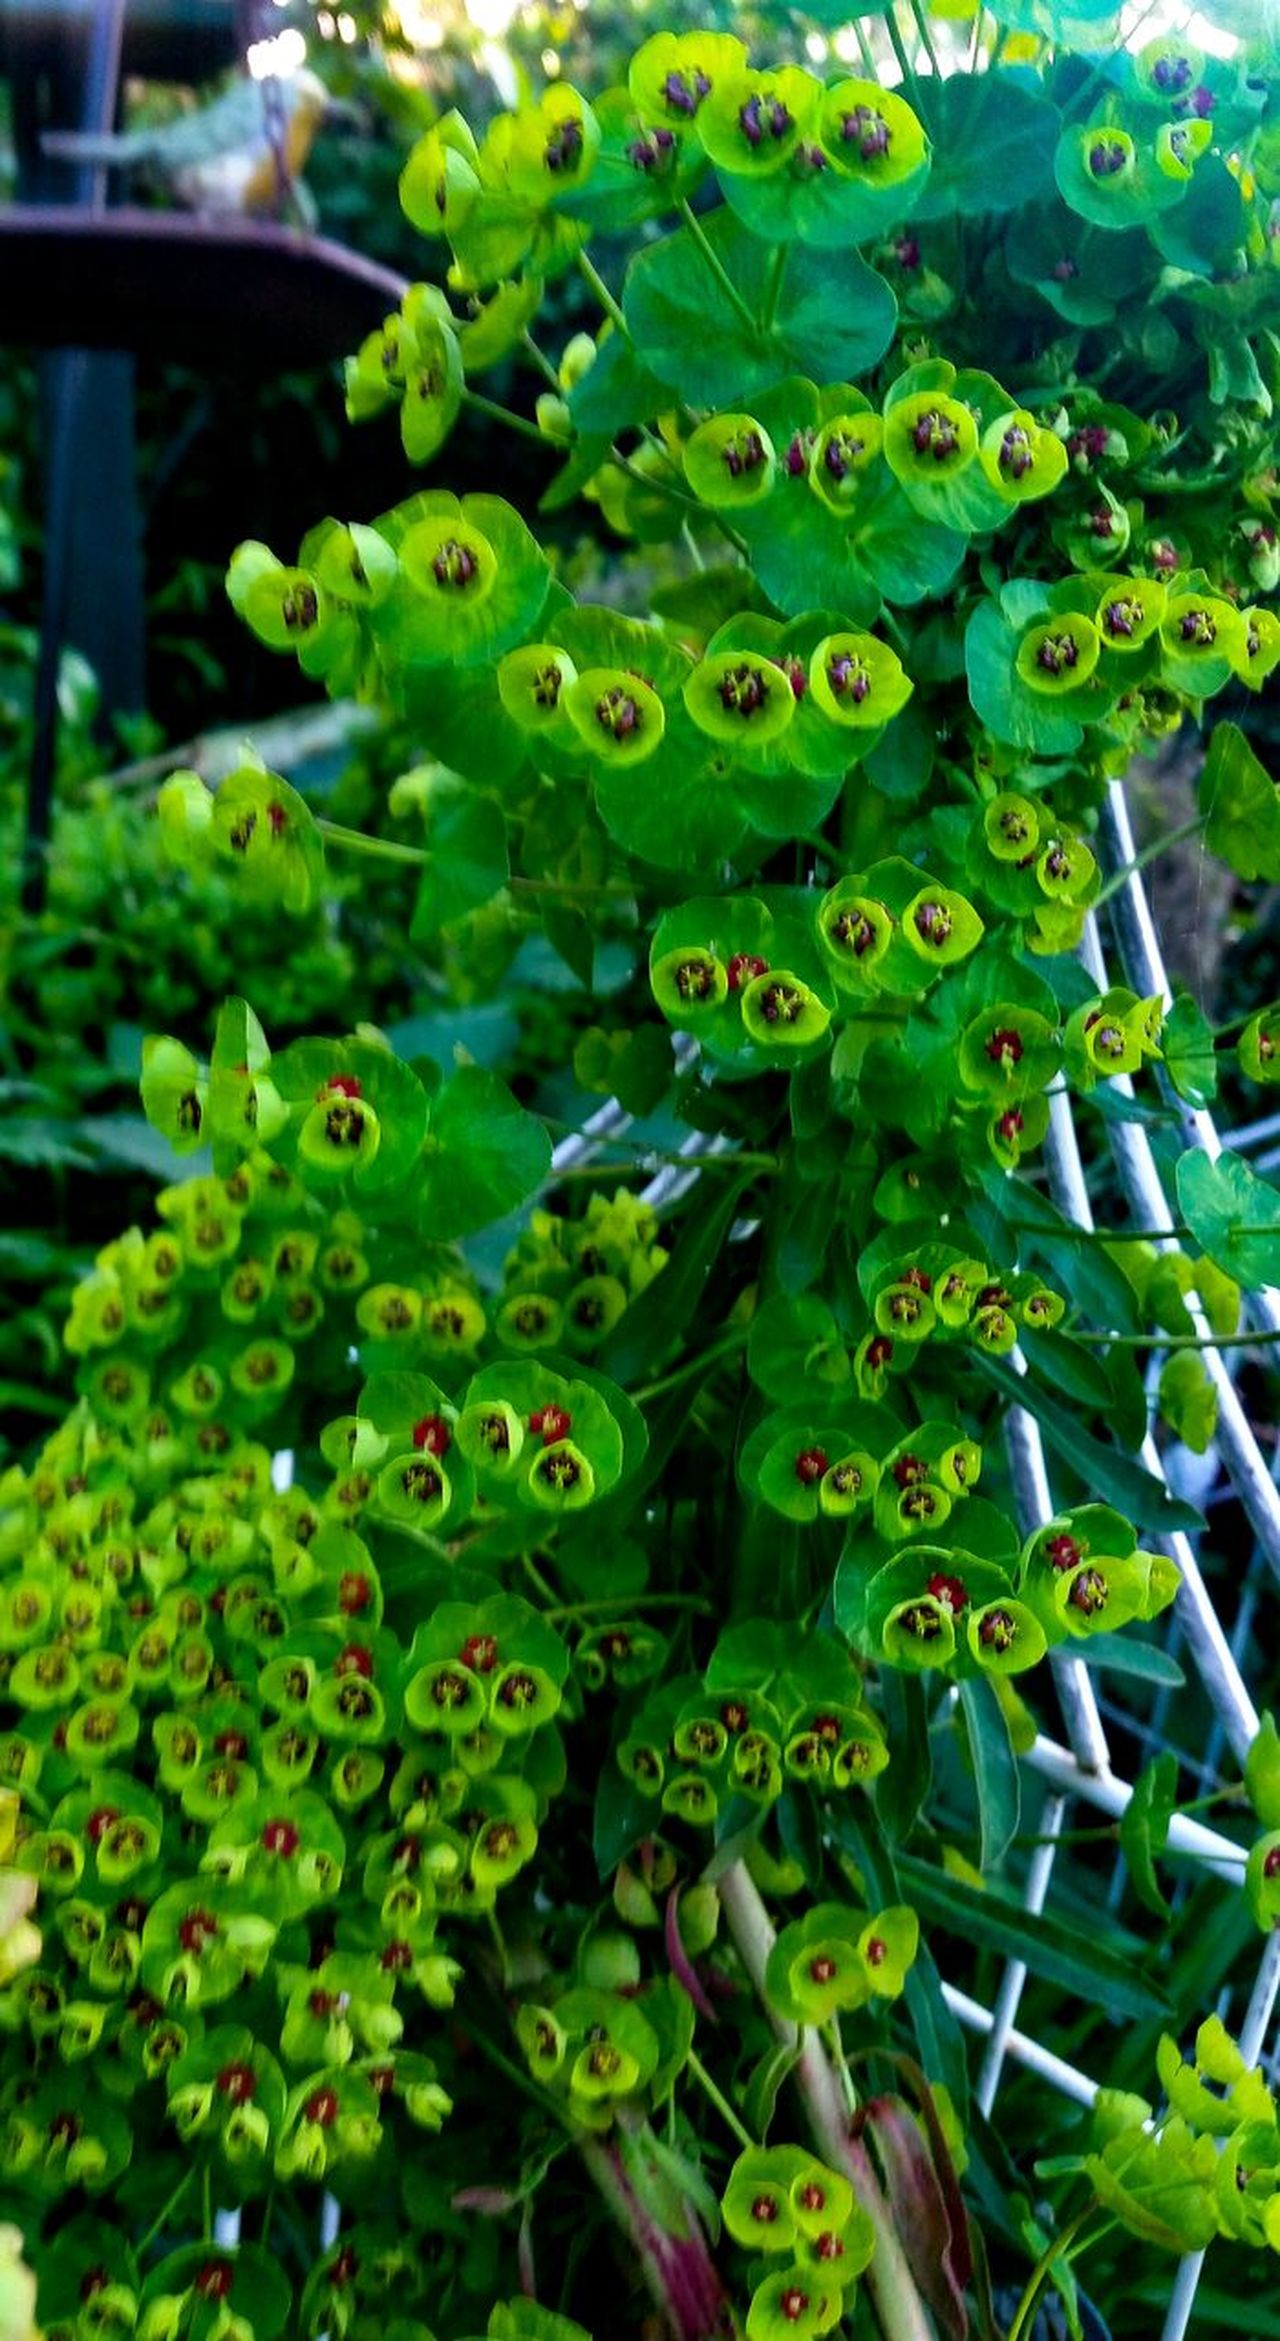 Euphorbia Green Color Growth Plant Nature Garden Flowers Freshness No People Outdoors Beauty In Nature Close-up Petal, Petals, Leaf, Leaves, Evening Light EyeEm Nature Lover Countryside Landscape Flowerphotography Still Life Photography Springtime Green Green Green!  Fragility Petal Flower Head Symmetrical Eyem Nature Focus On Foreground